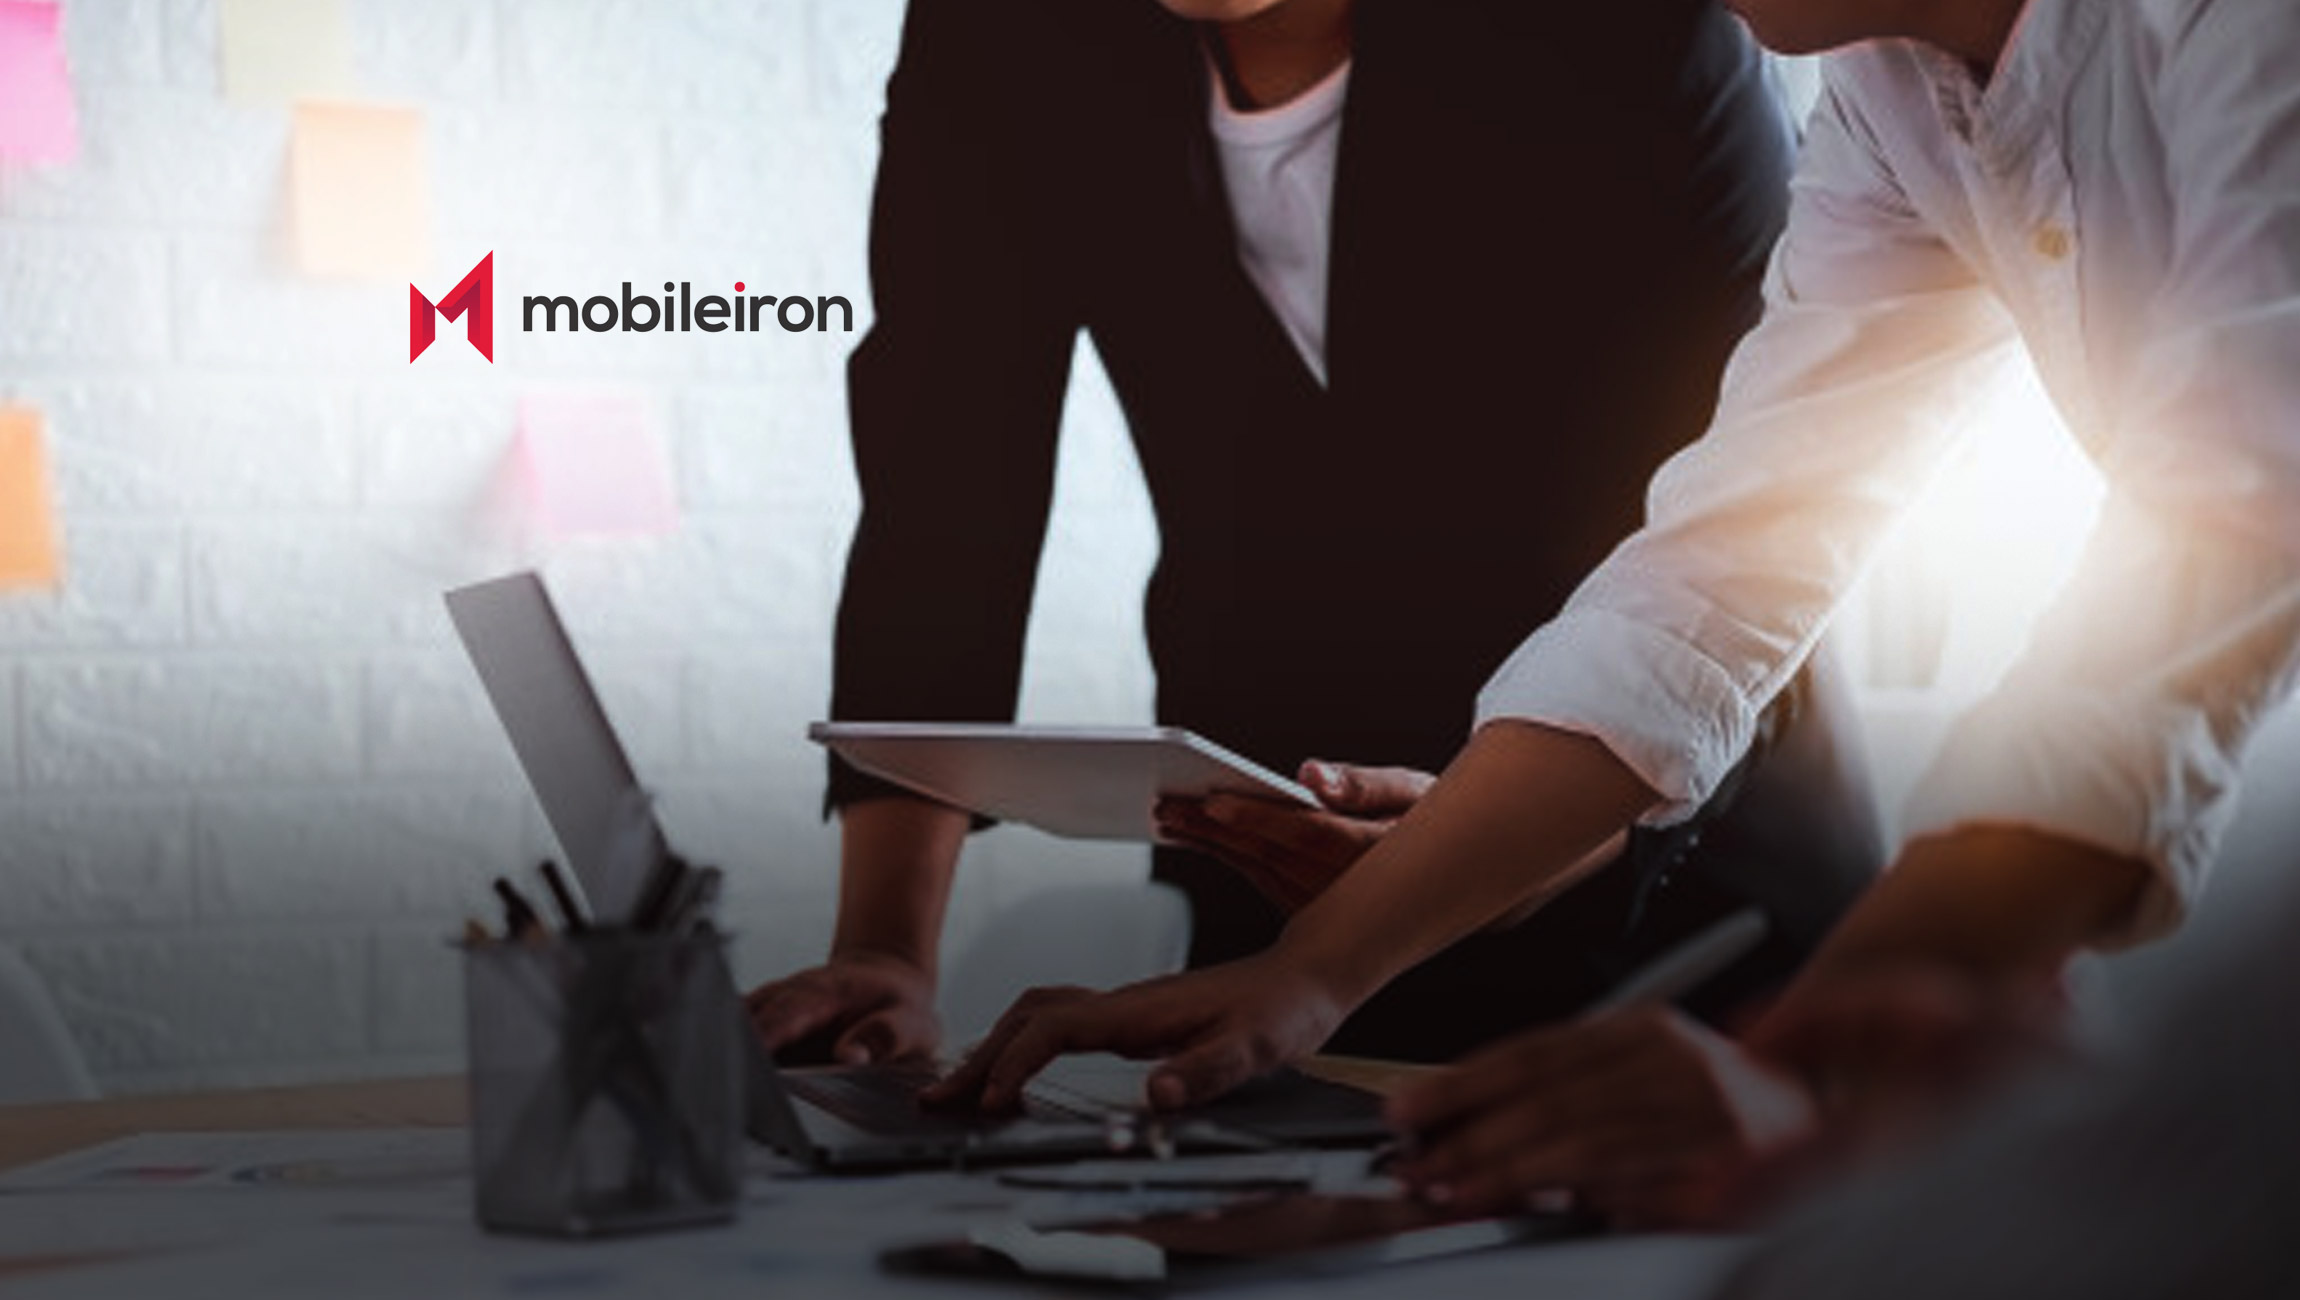 MobileIron to Be Acquired by Ivanti to Secure Every Endpoint and Power the Everywhere Enterprise